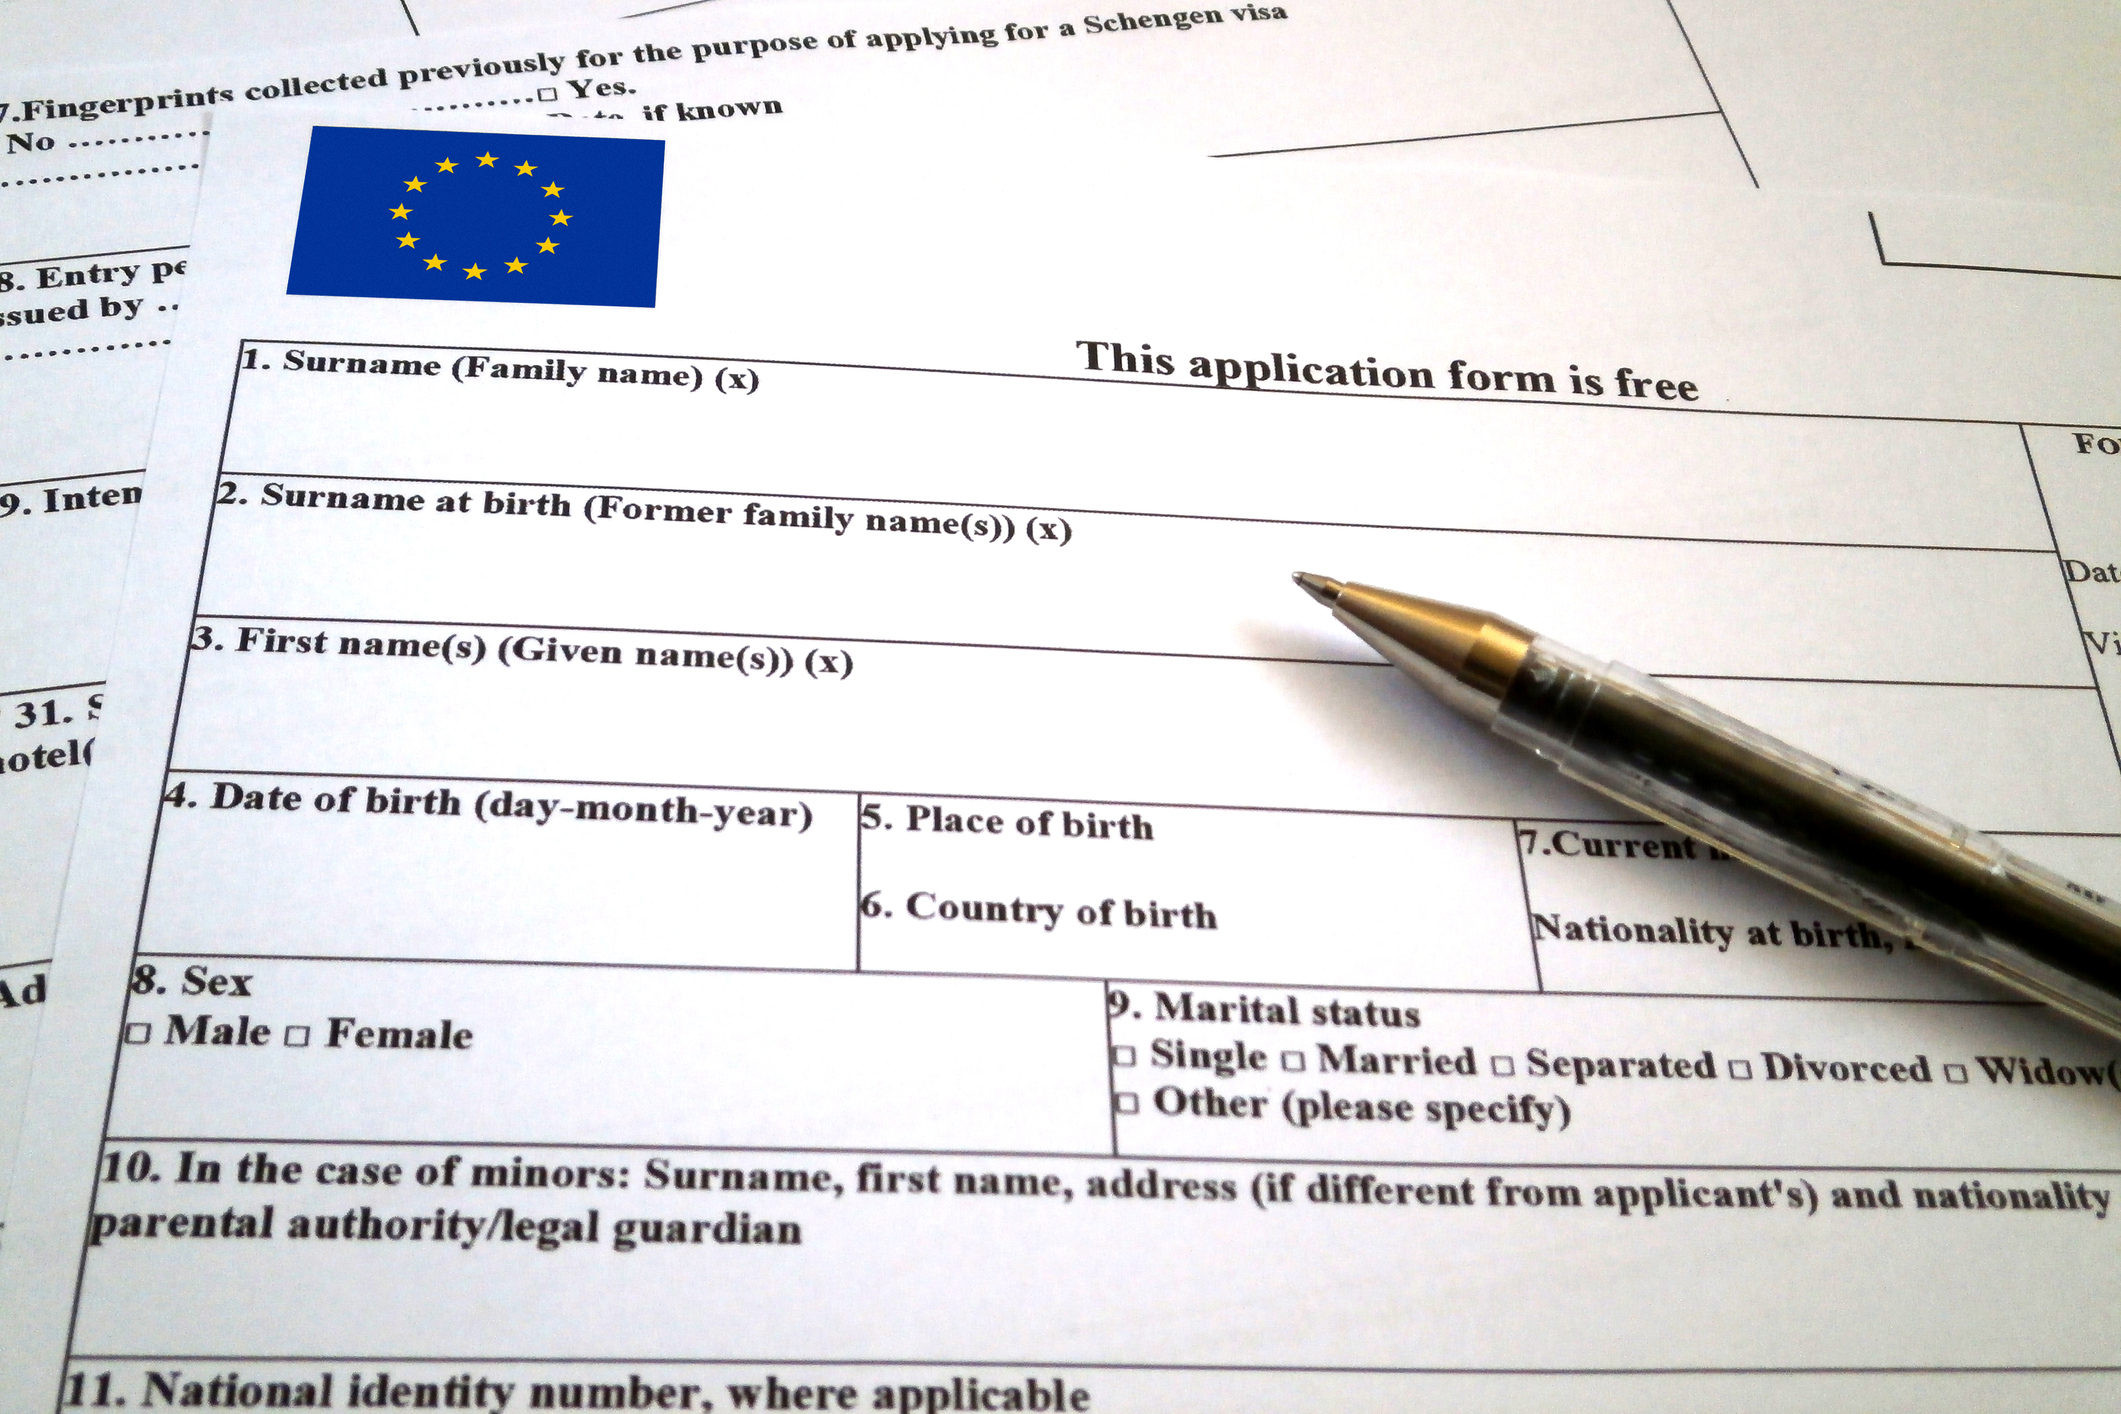 Close up of Schengen visa application form